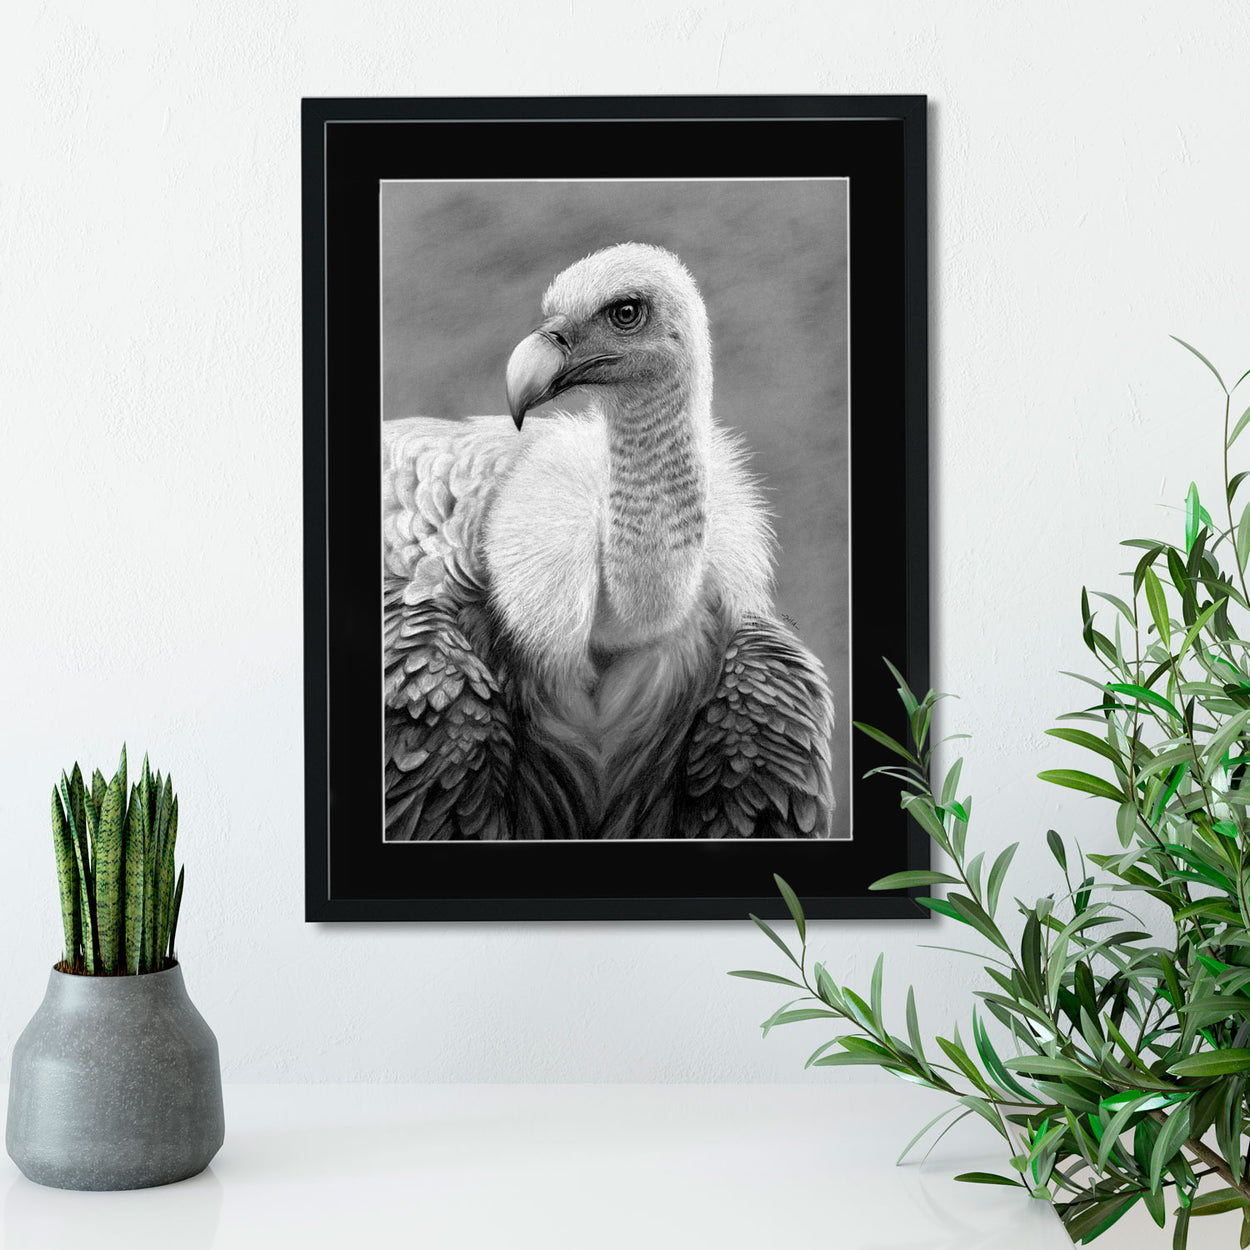 Griffon Vulture Drawing on Wall - The Thriving Wild - Jill Dimond